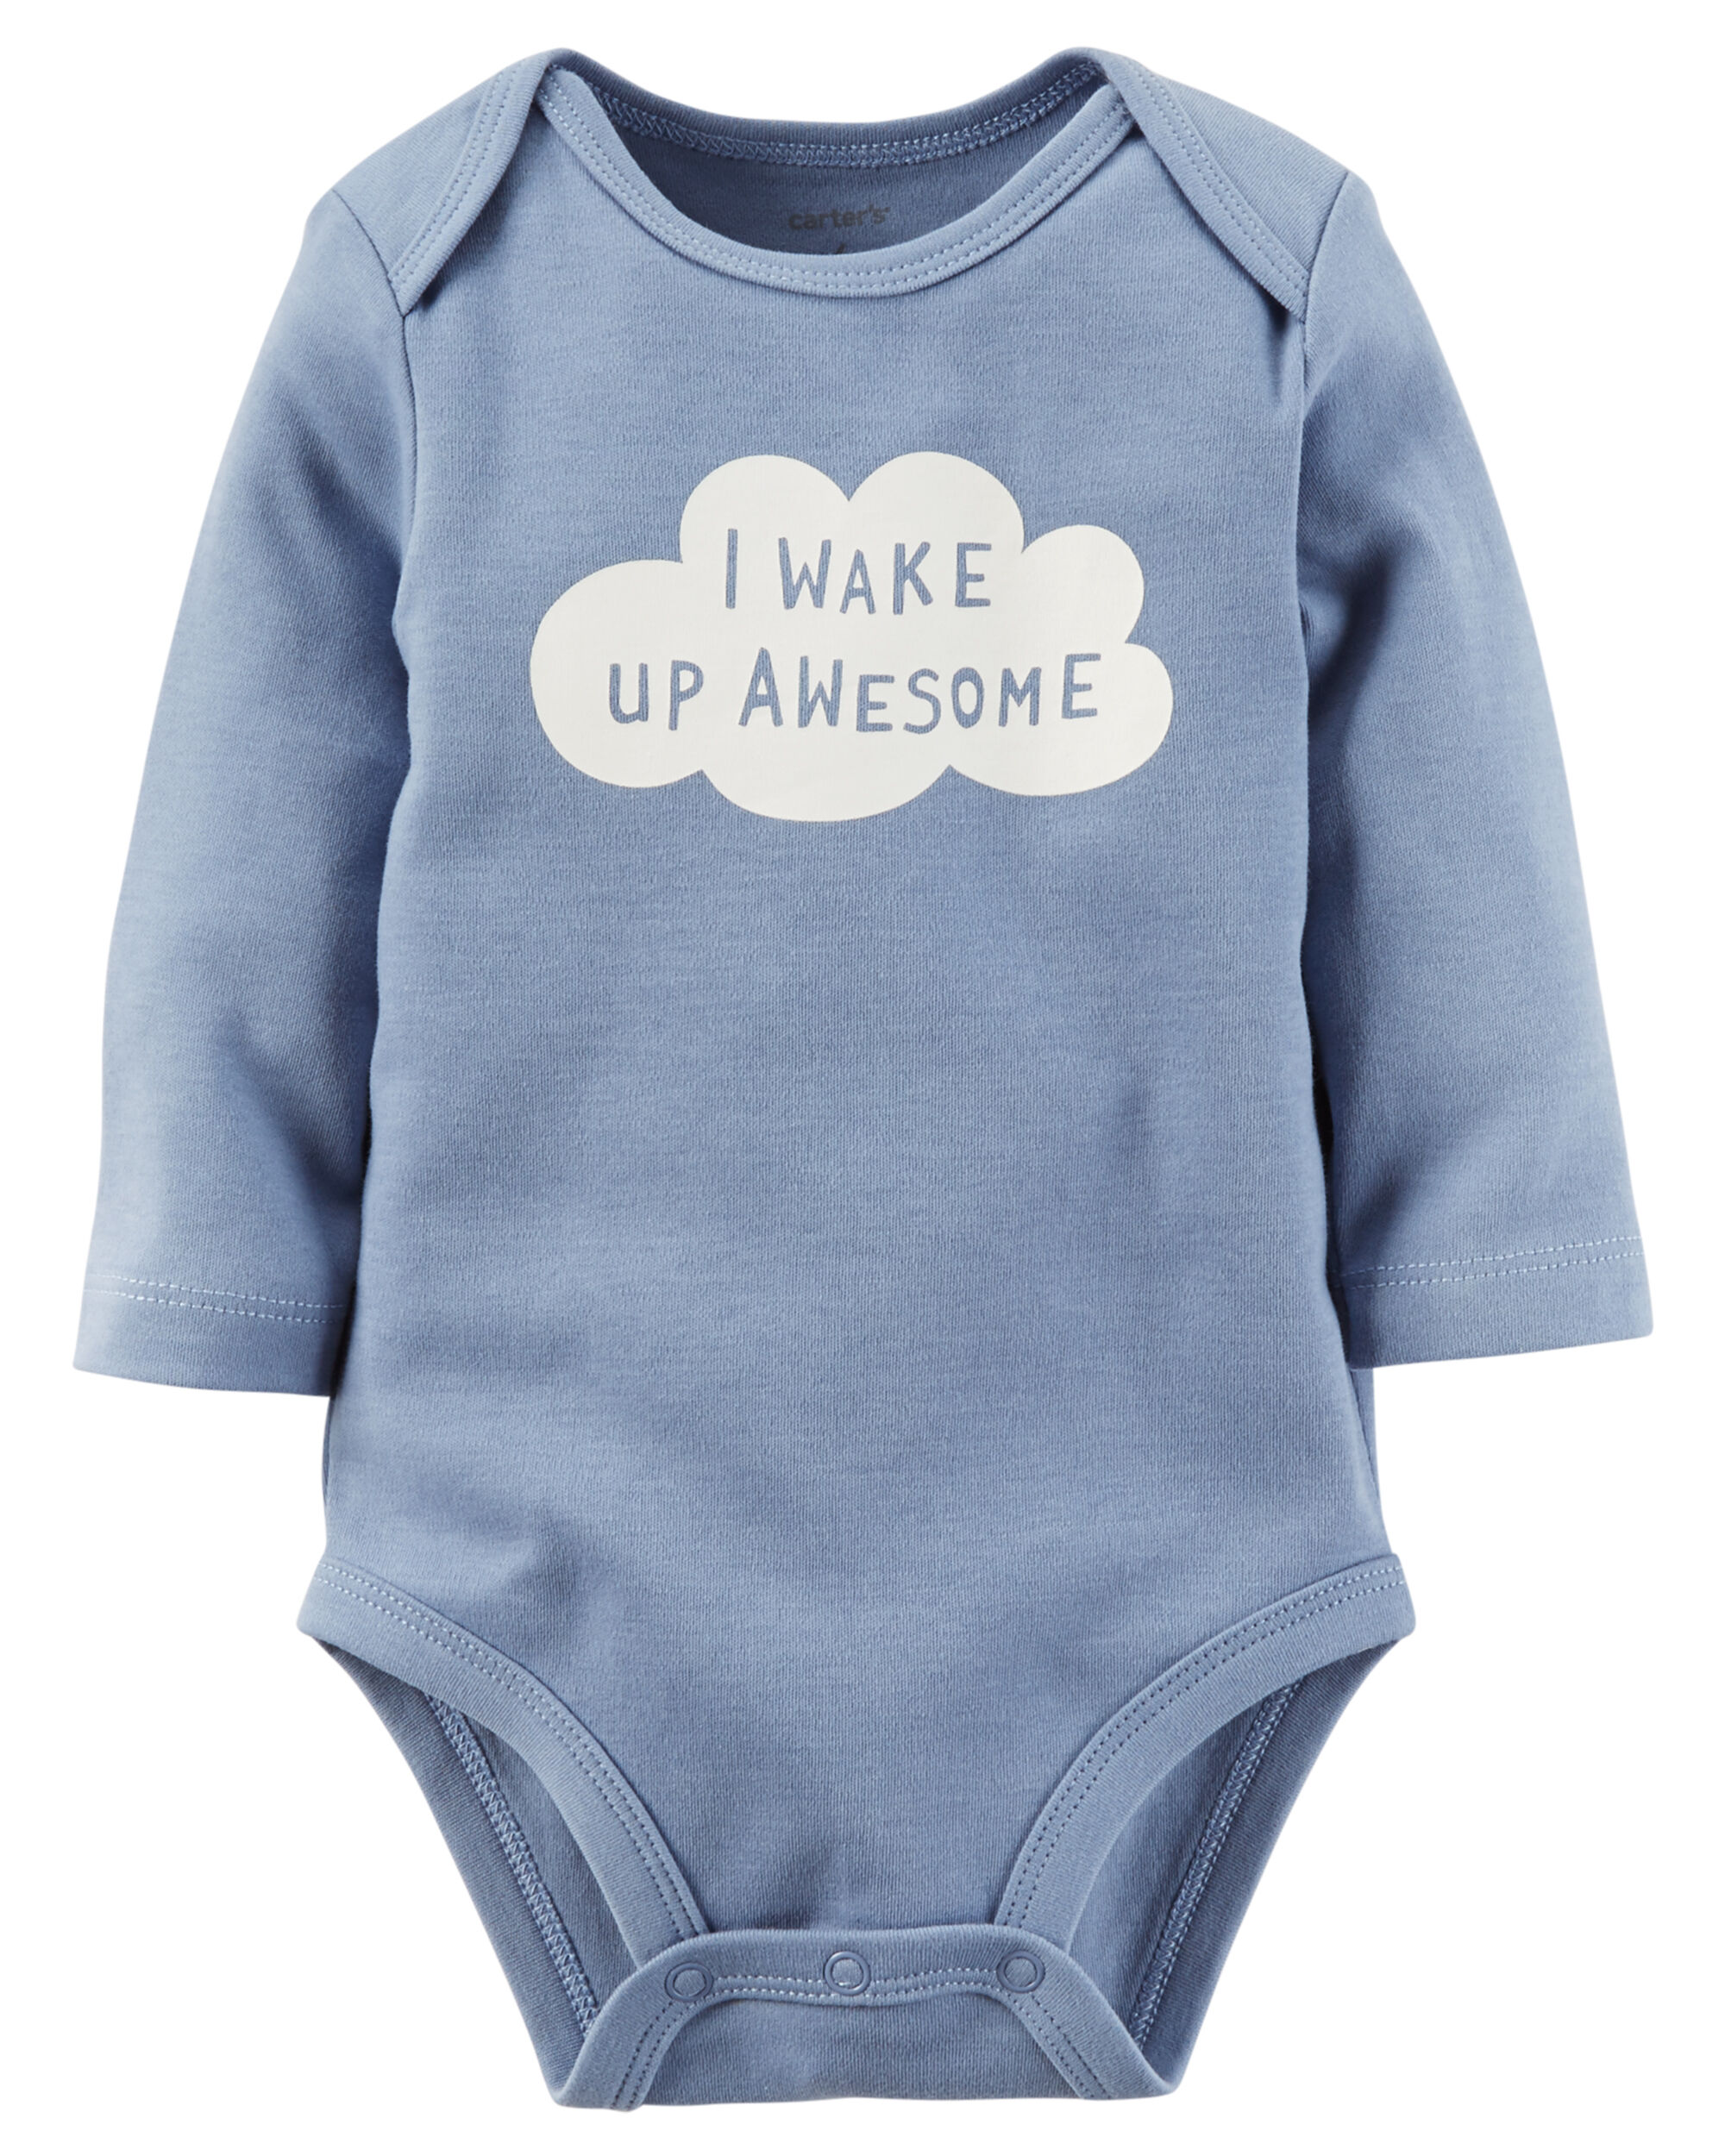 I Wake Up Awesome Collectible Bodysuit